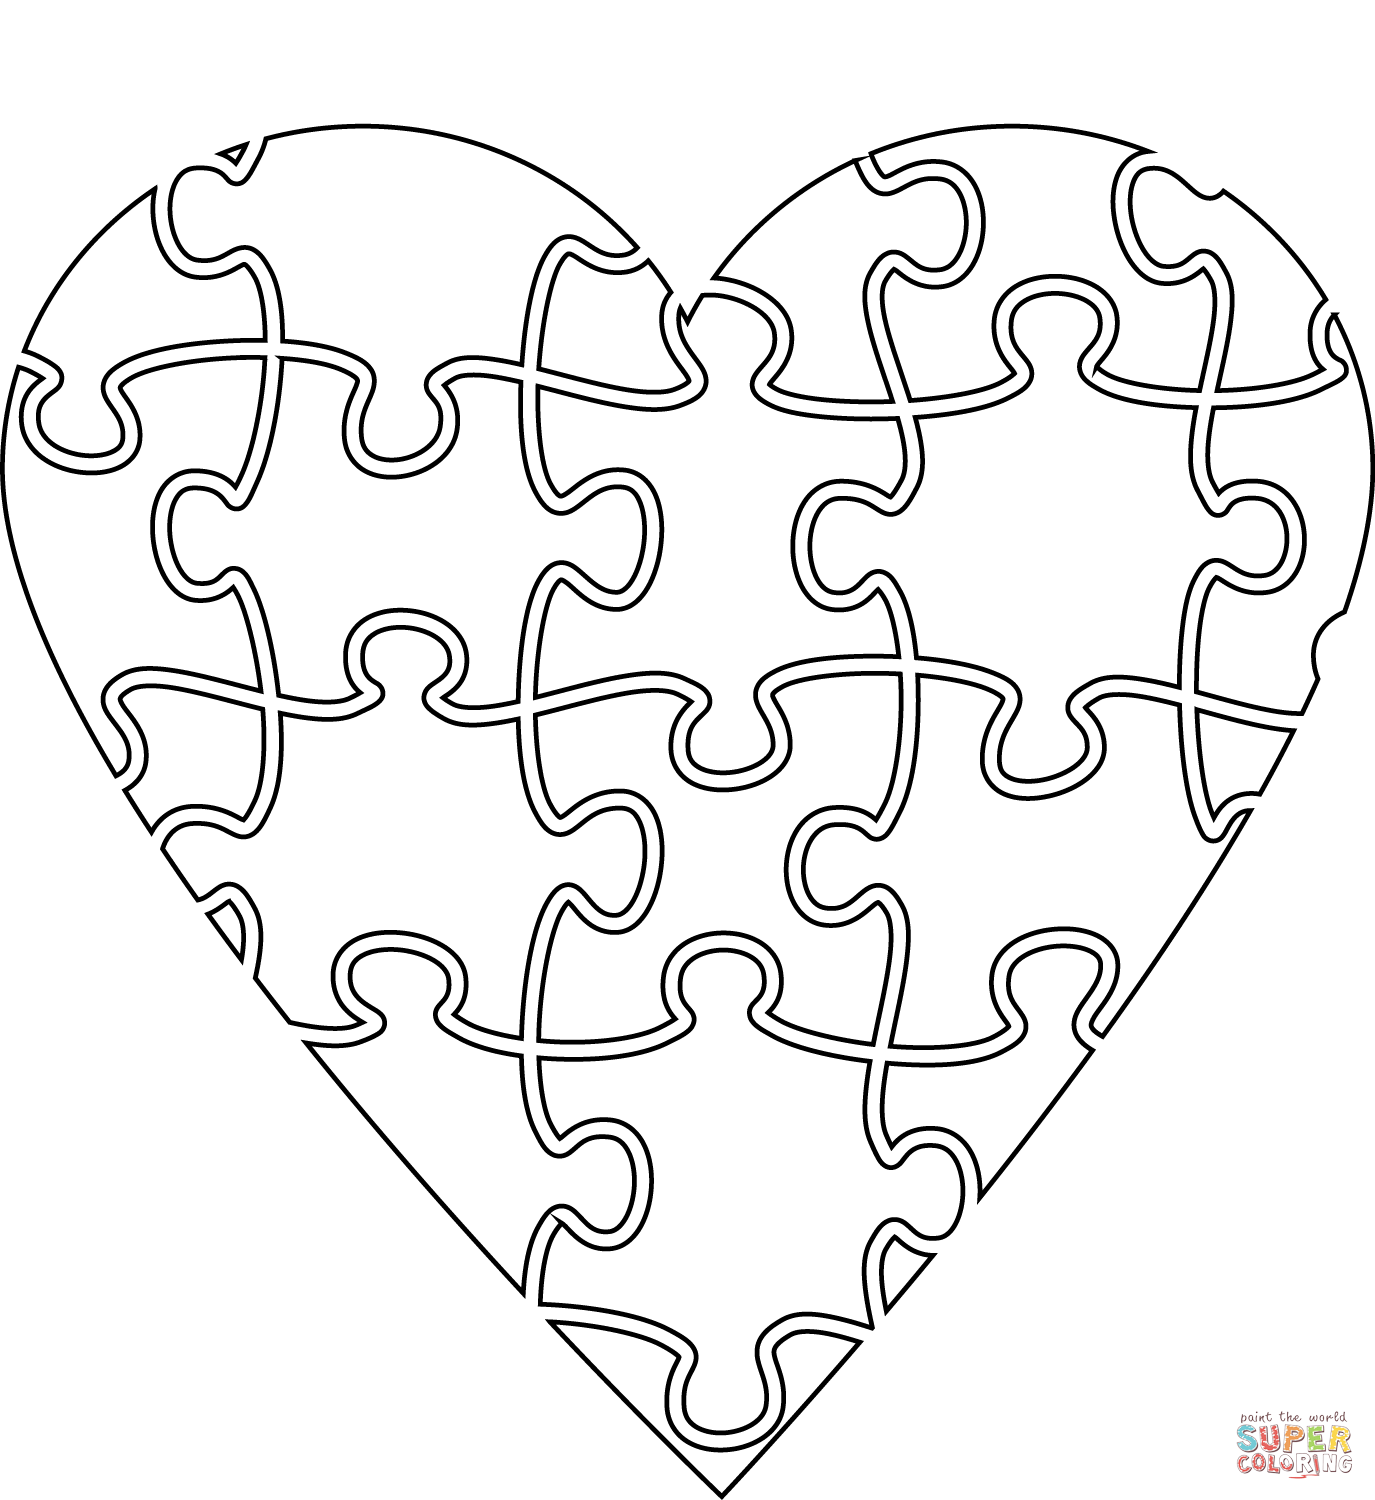 Heart Jigsaw Super Coloring Valentine Coloring Pages Heart Coloring Pages Free Printable Coloring Pages [ 1500 x 1375 Pixel ]